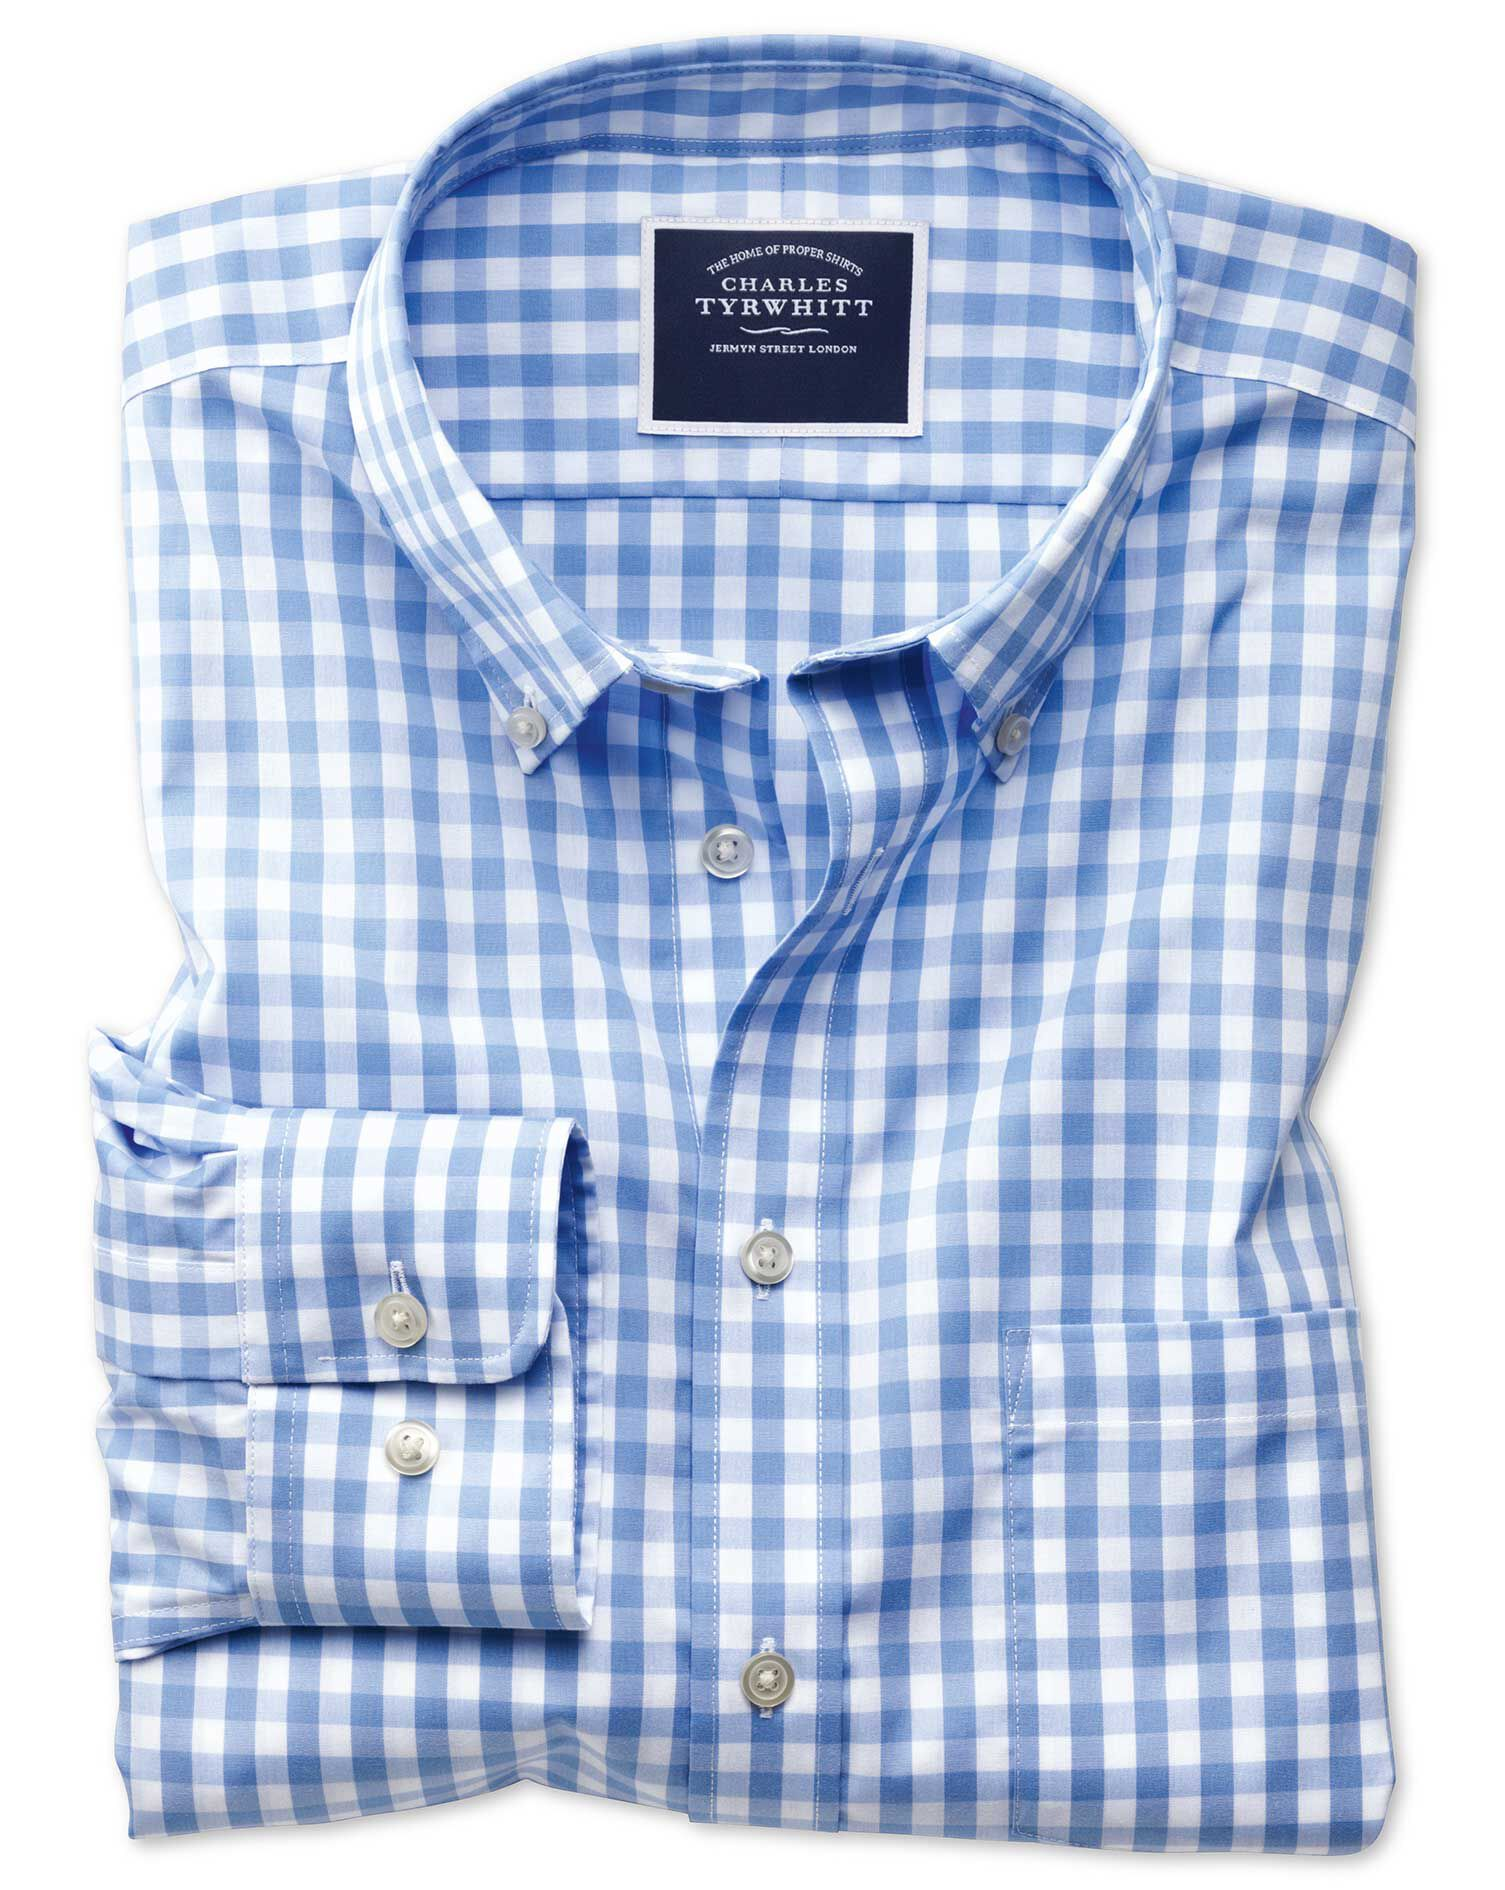 Slim Fit Non-Iron Poplin Sky Blue Gingham Cotton Shirt Single Cuff Size Small by Charles Tyrwhitt